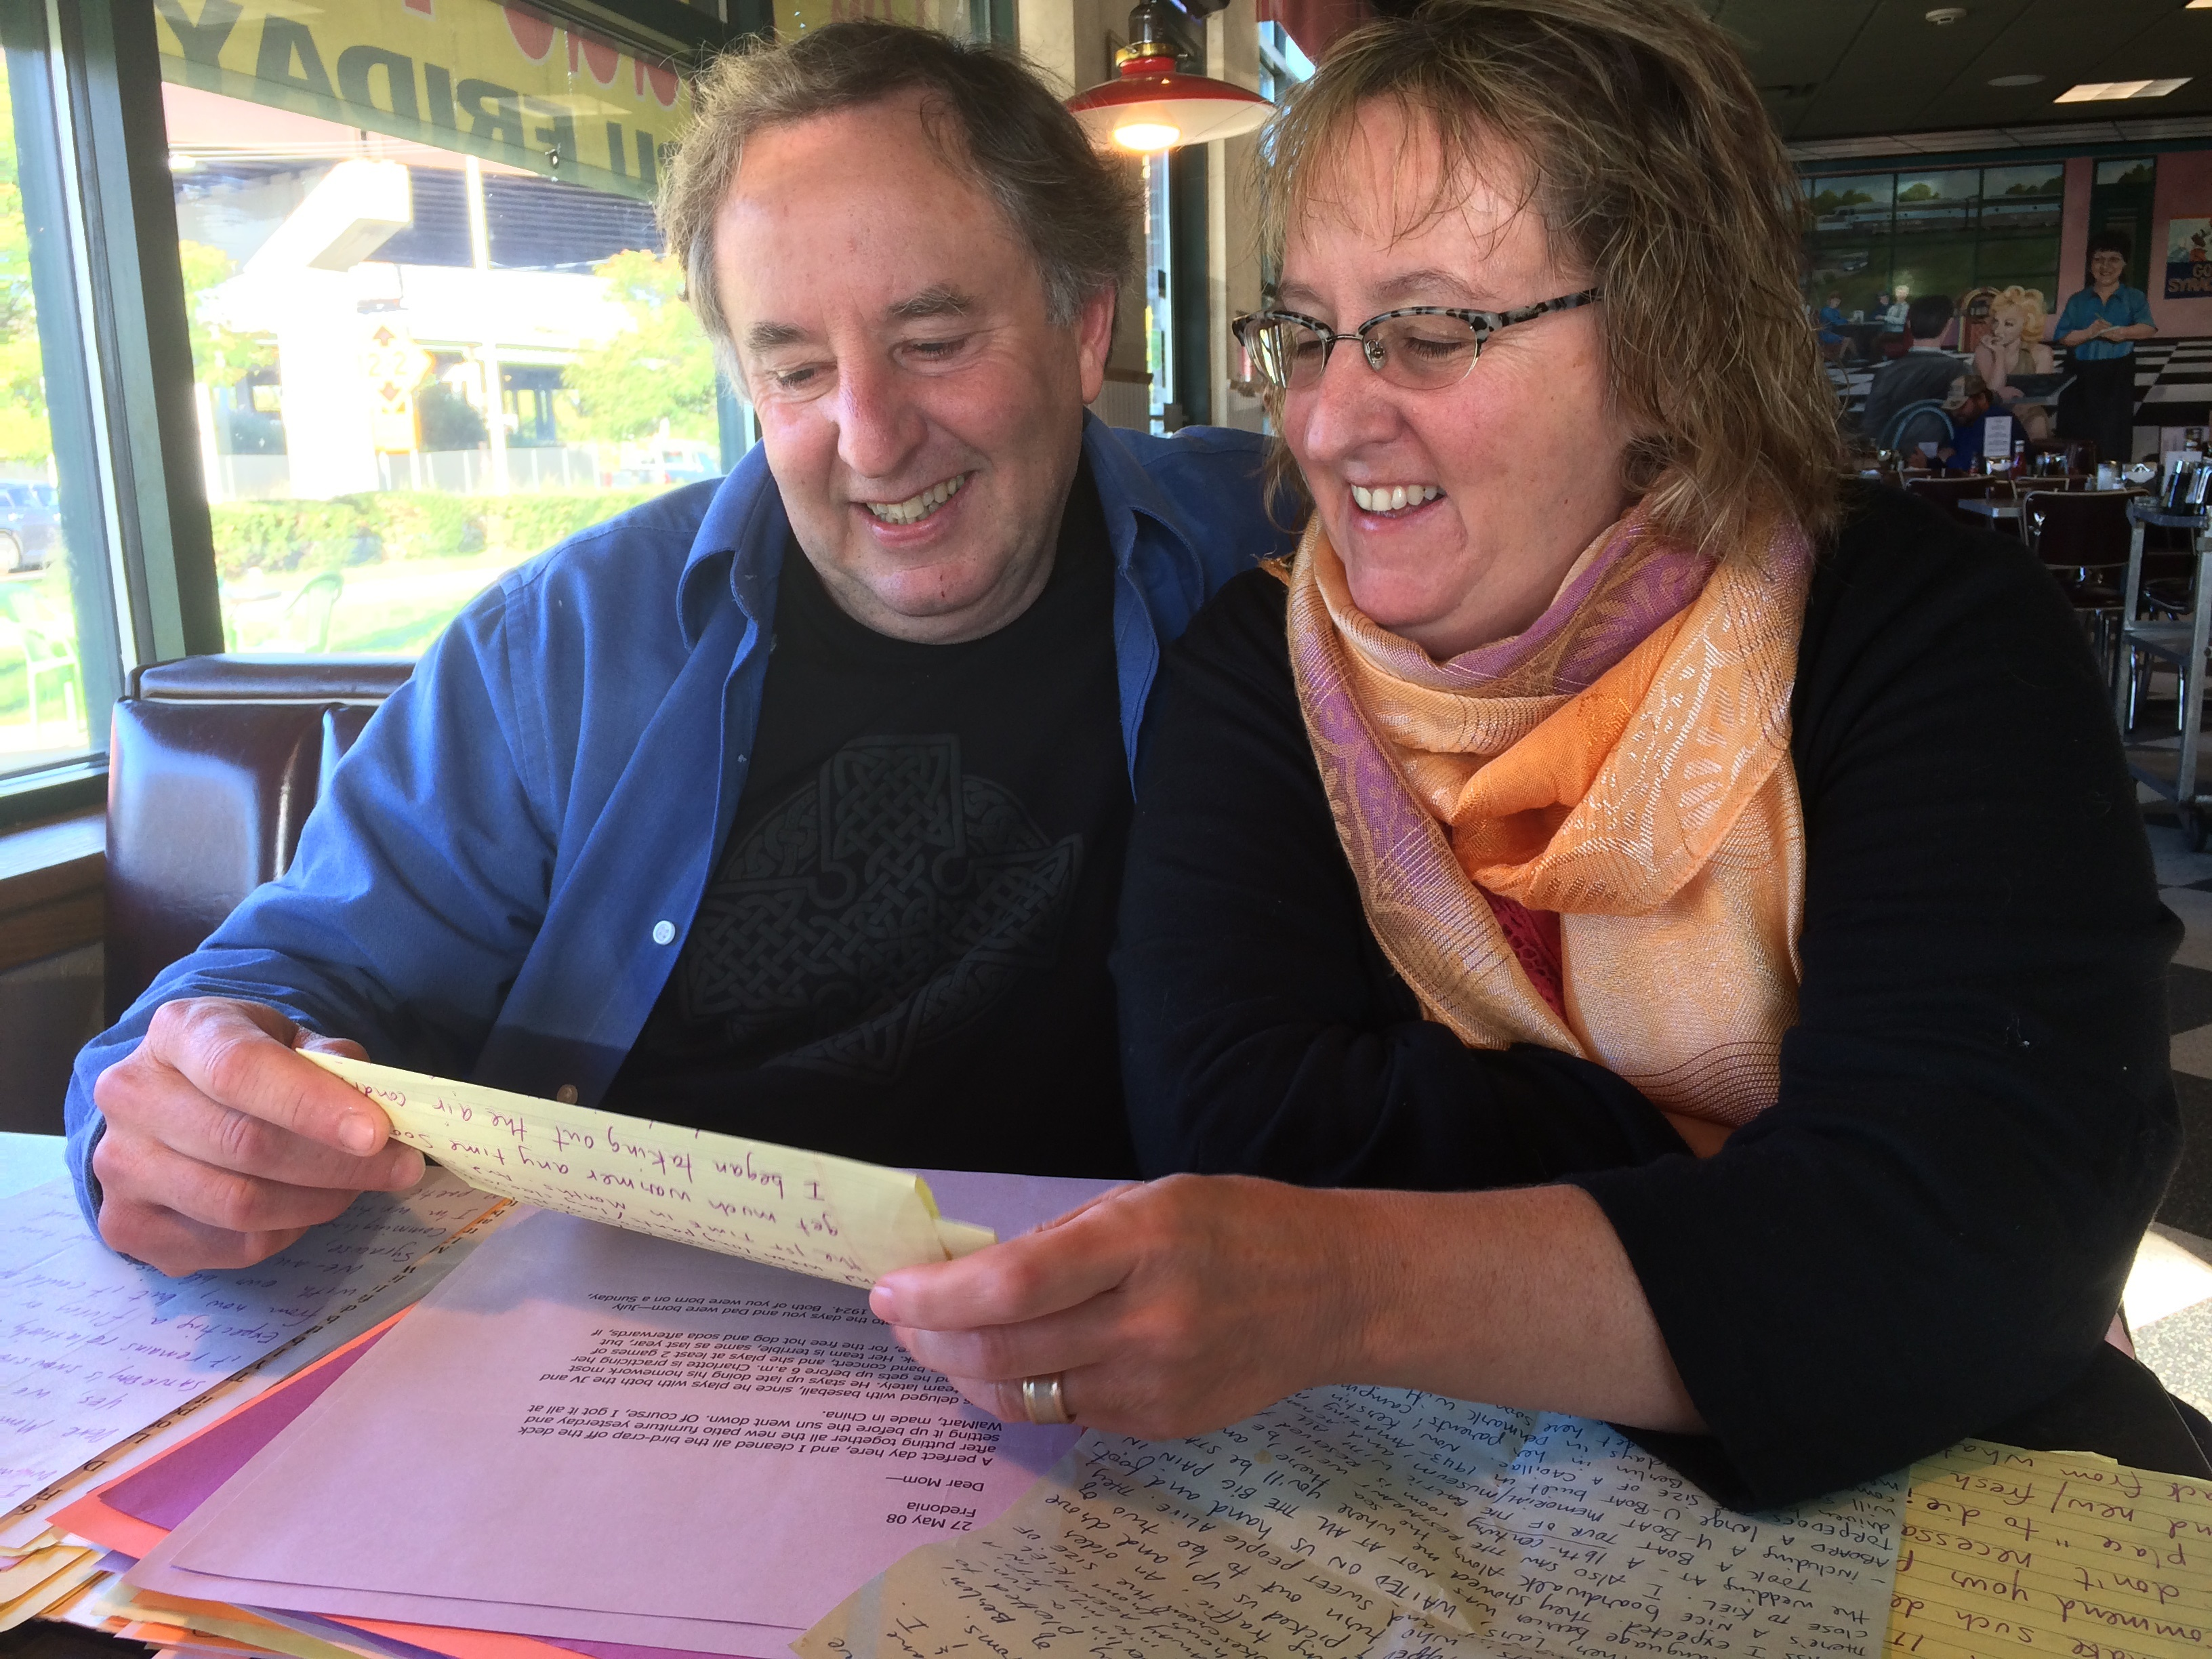 Gerry Crinnin with his sister Kathleen: An entire family, over the years, that traces time through Gerry's letters. (Sean Kirst/submitted image)